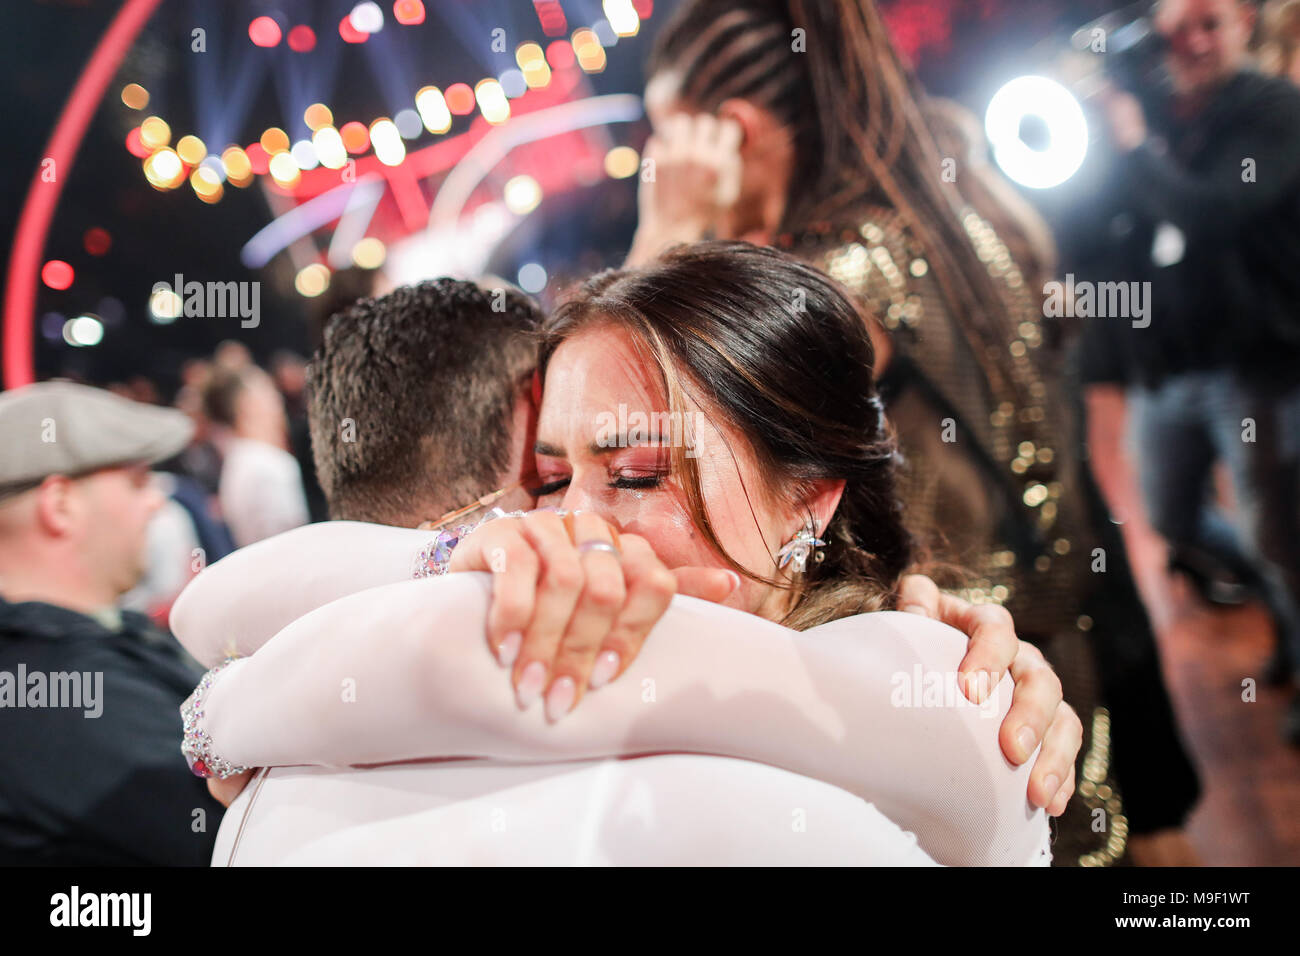 23 March 2018, Germany, Cologne: Bachelorette Jessica Paszka is consoled by professional dancer Robert Beitsch after being voted out of the celebrity dance competition 'Let's Dance', broadcast by television channel RTL. Photo: Rolf Vennenbernd/dpa - Stock Image